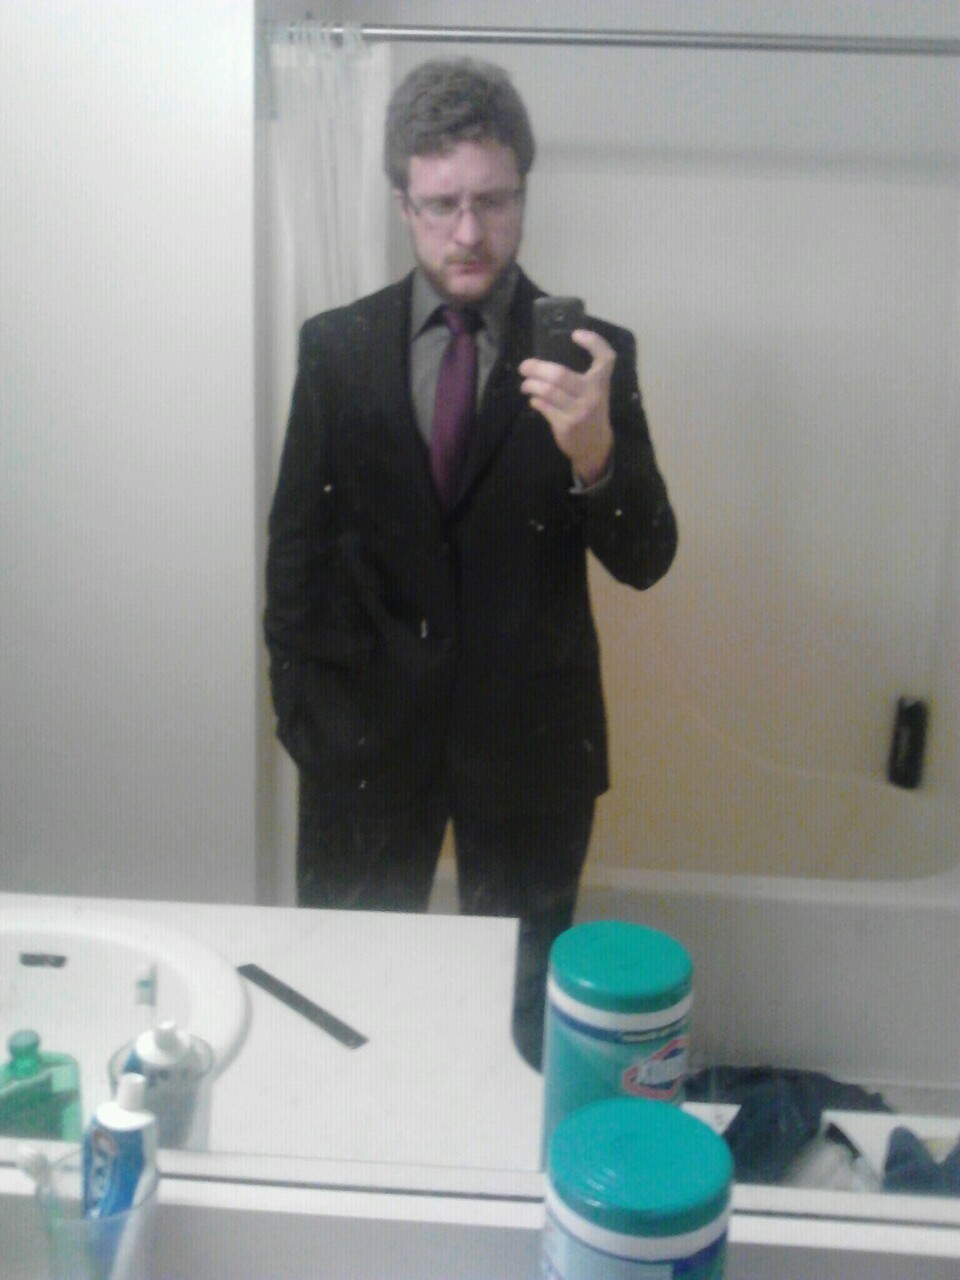 I say I clean up well